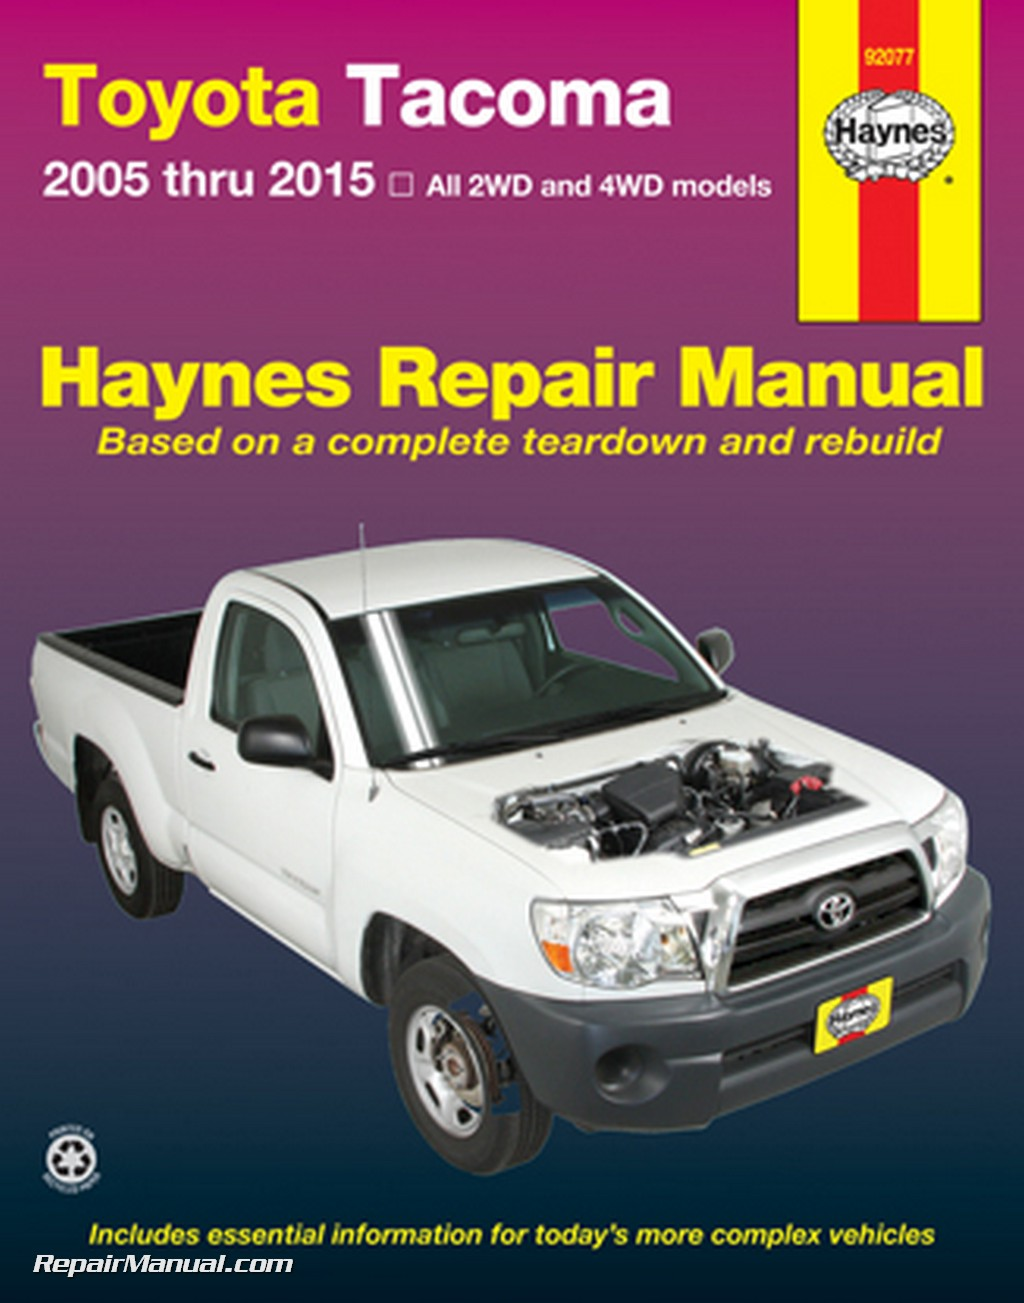 2014 Toyota Tacoma For Sale >> Haynes 2005-2015 Toyota Tacoma Truck Repair Manual